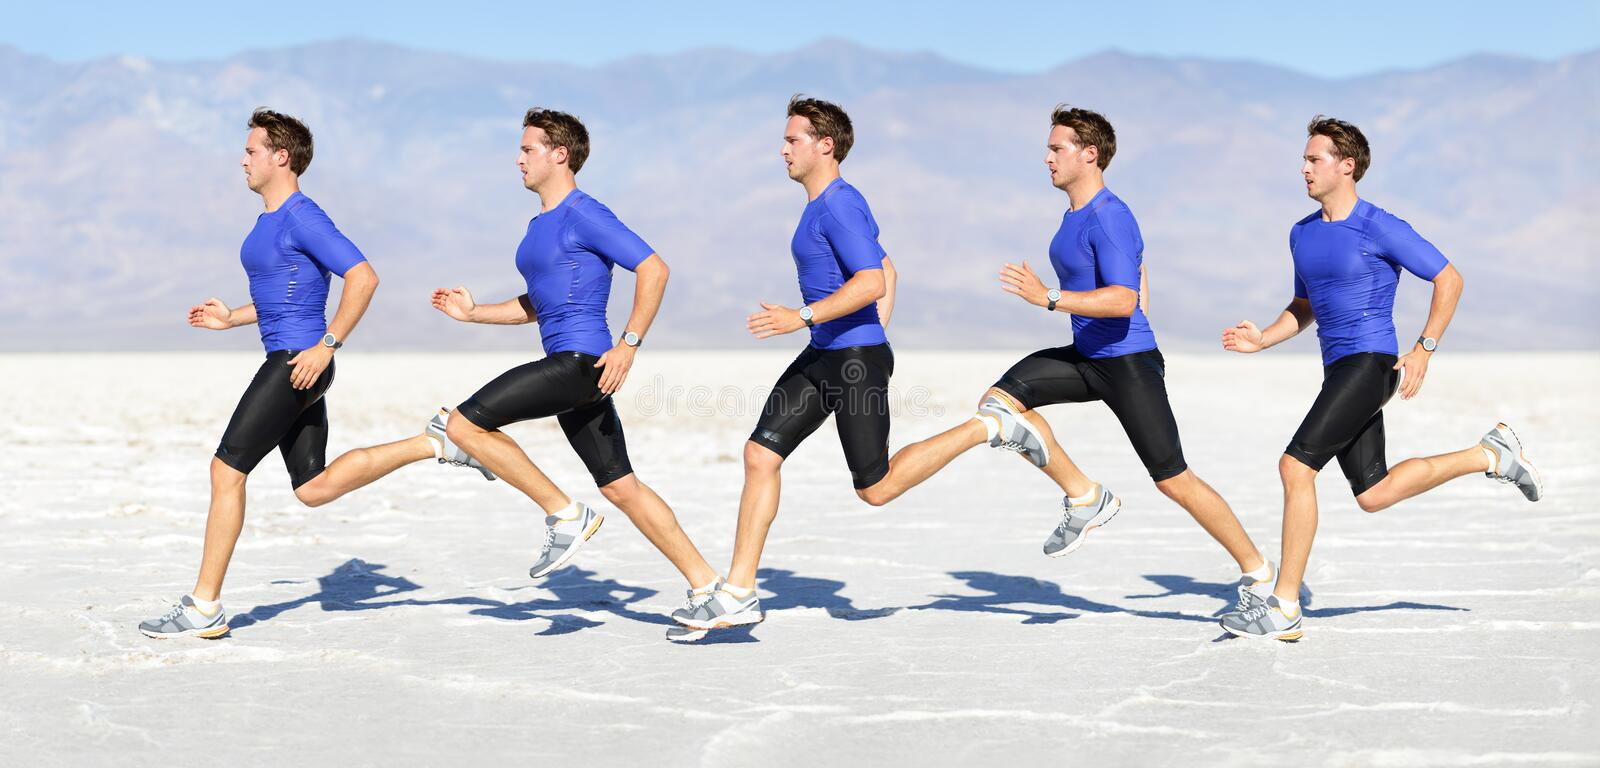 Running man - runner in speed motion composite royalty free stock photos